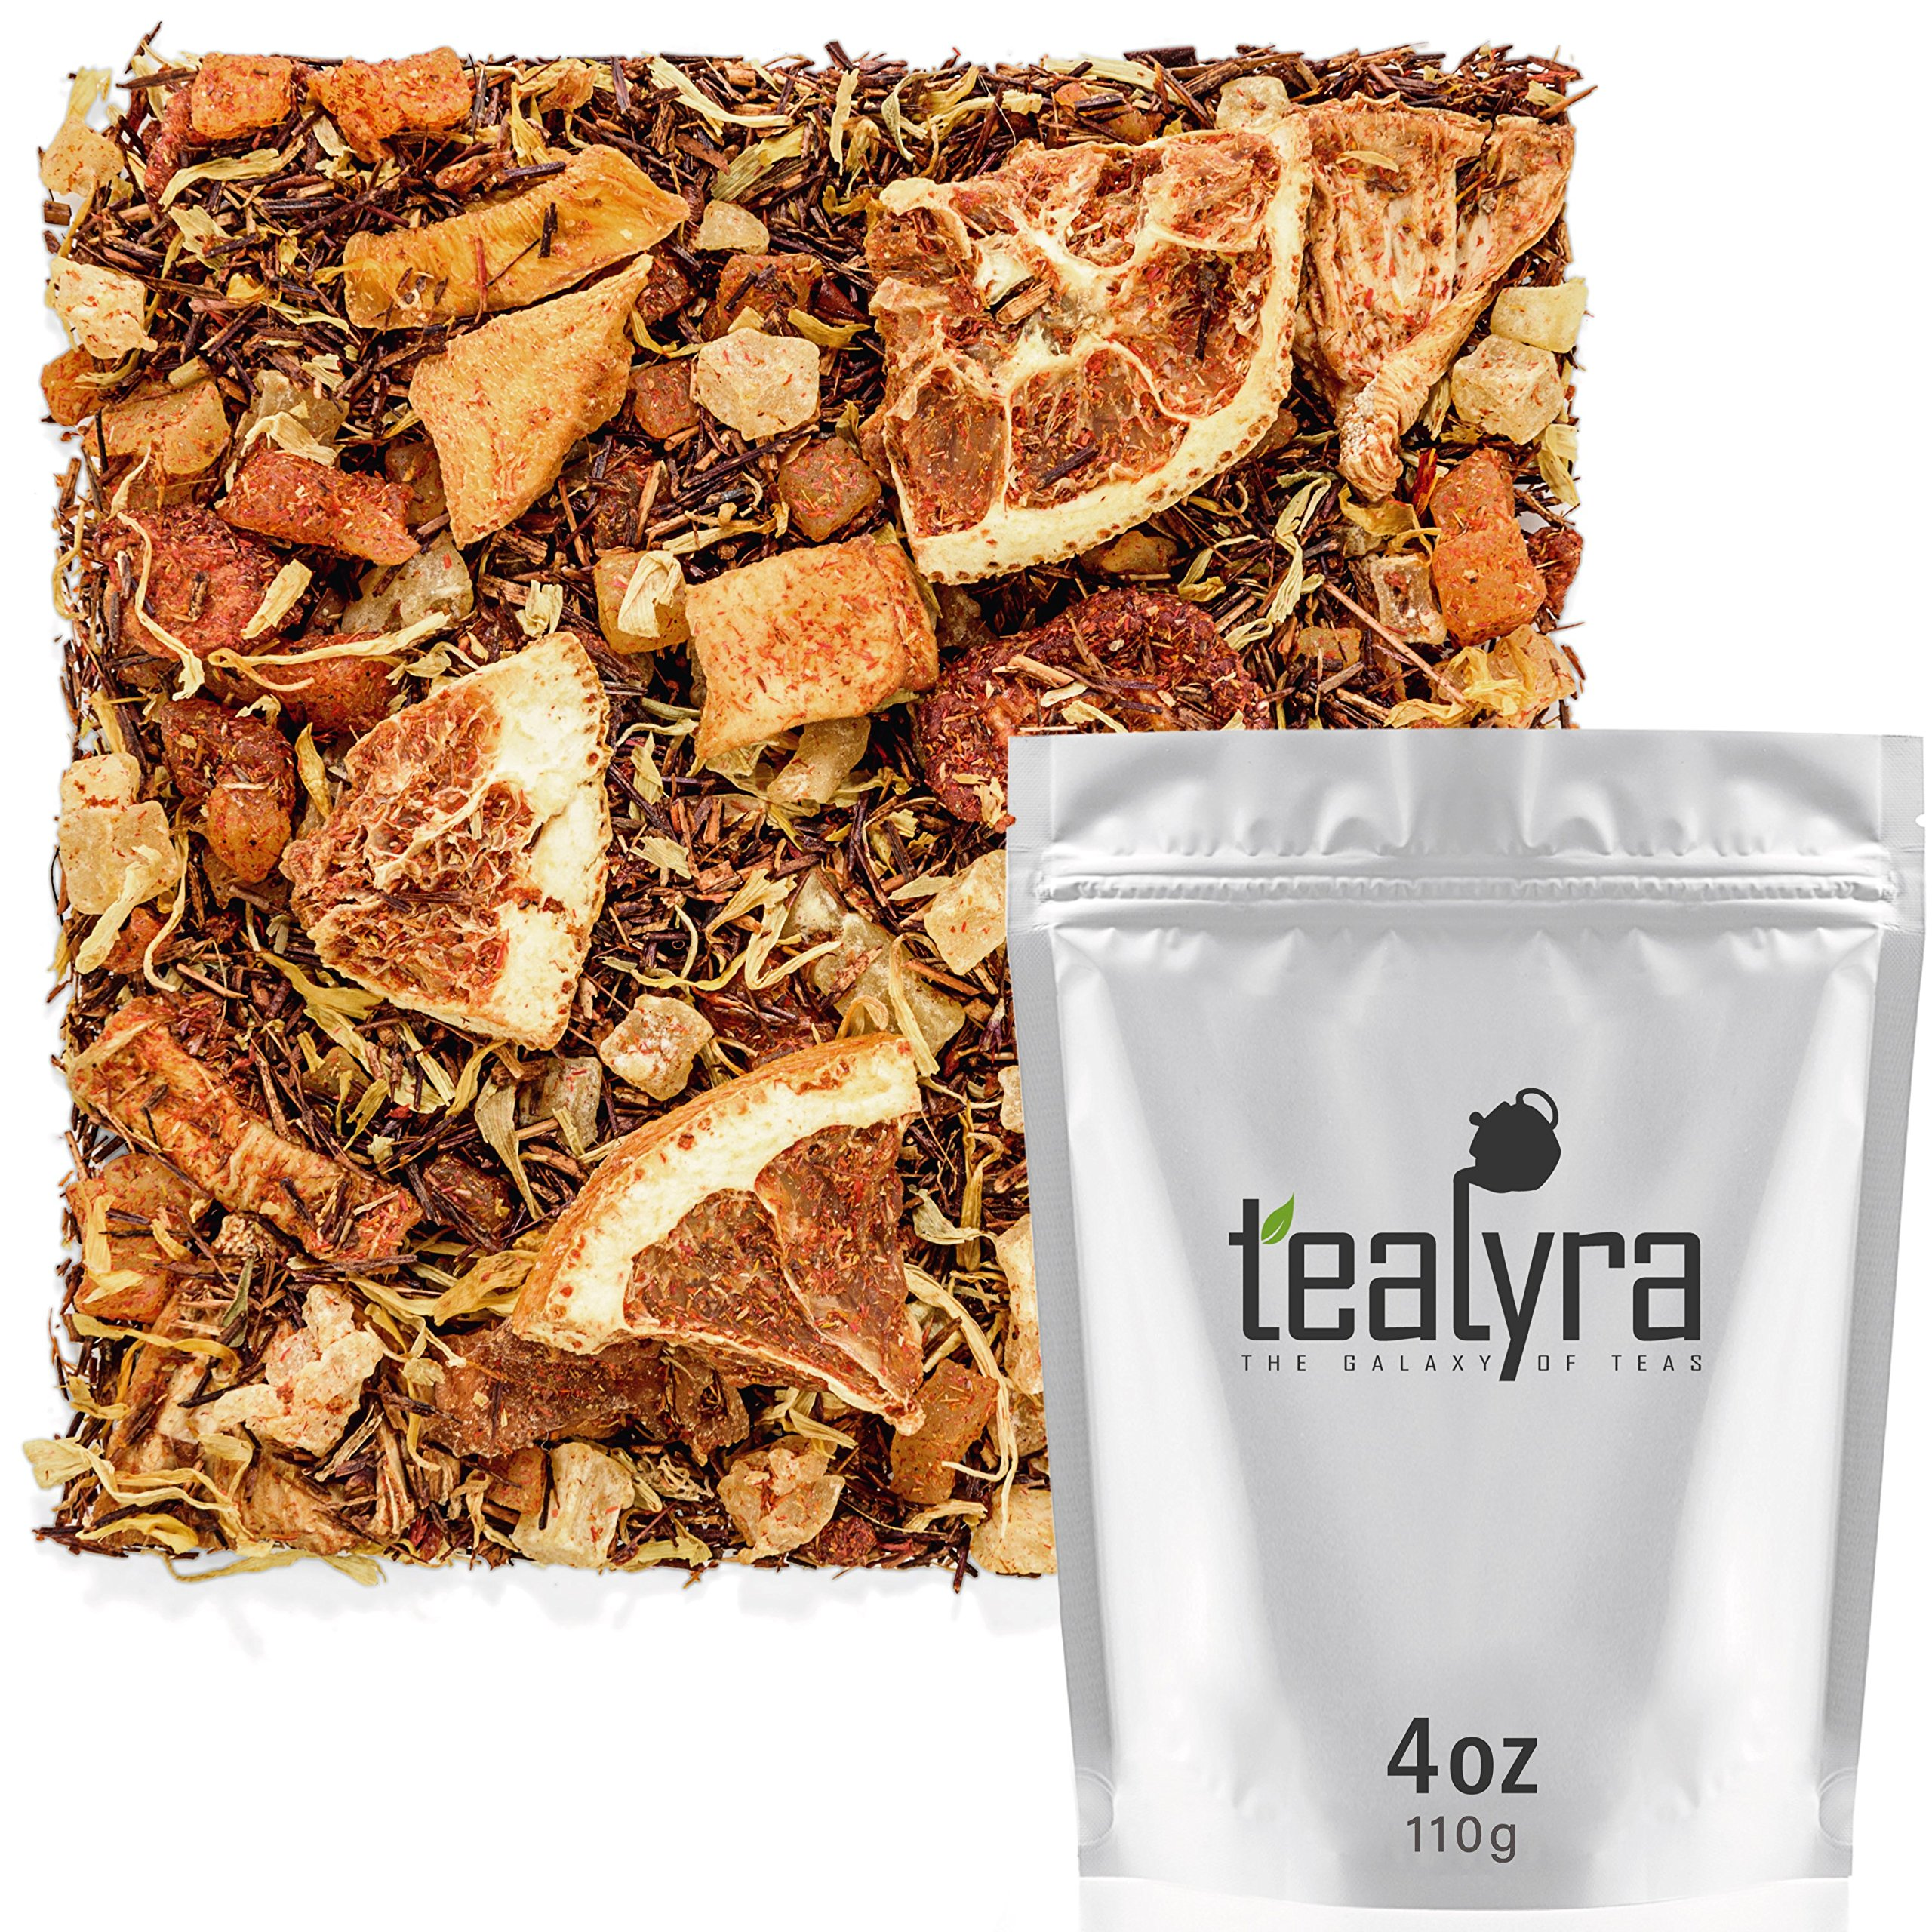 Tealyra - Mango 'n Friends - Rooibos Fruity Herbal Loose Leaf Tea Blend - Red Bush - Pineapple - Orange - Strawberry - Caffeine-Free - Vitamines Rich - Hot and Iced - 110g (4-ounce) by Tealyra